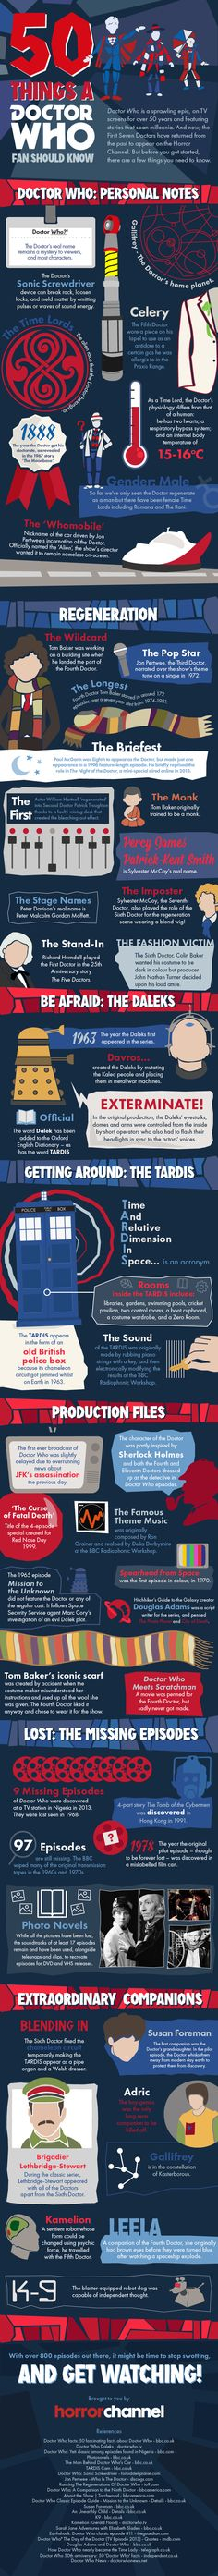 50 things a Doctor Who fan should know - but the race is actualy Gallifreyan and Time Lord is a rank :-)